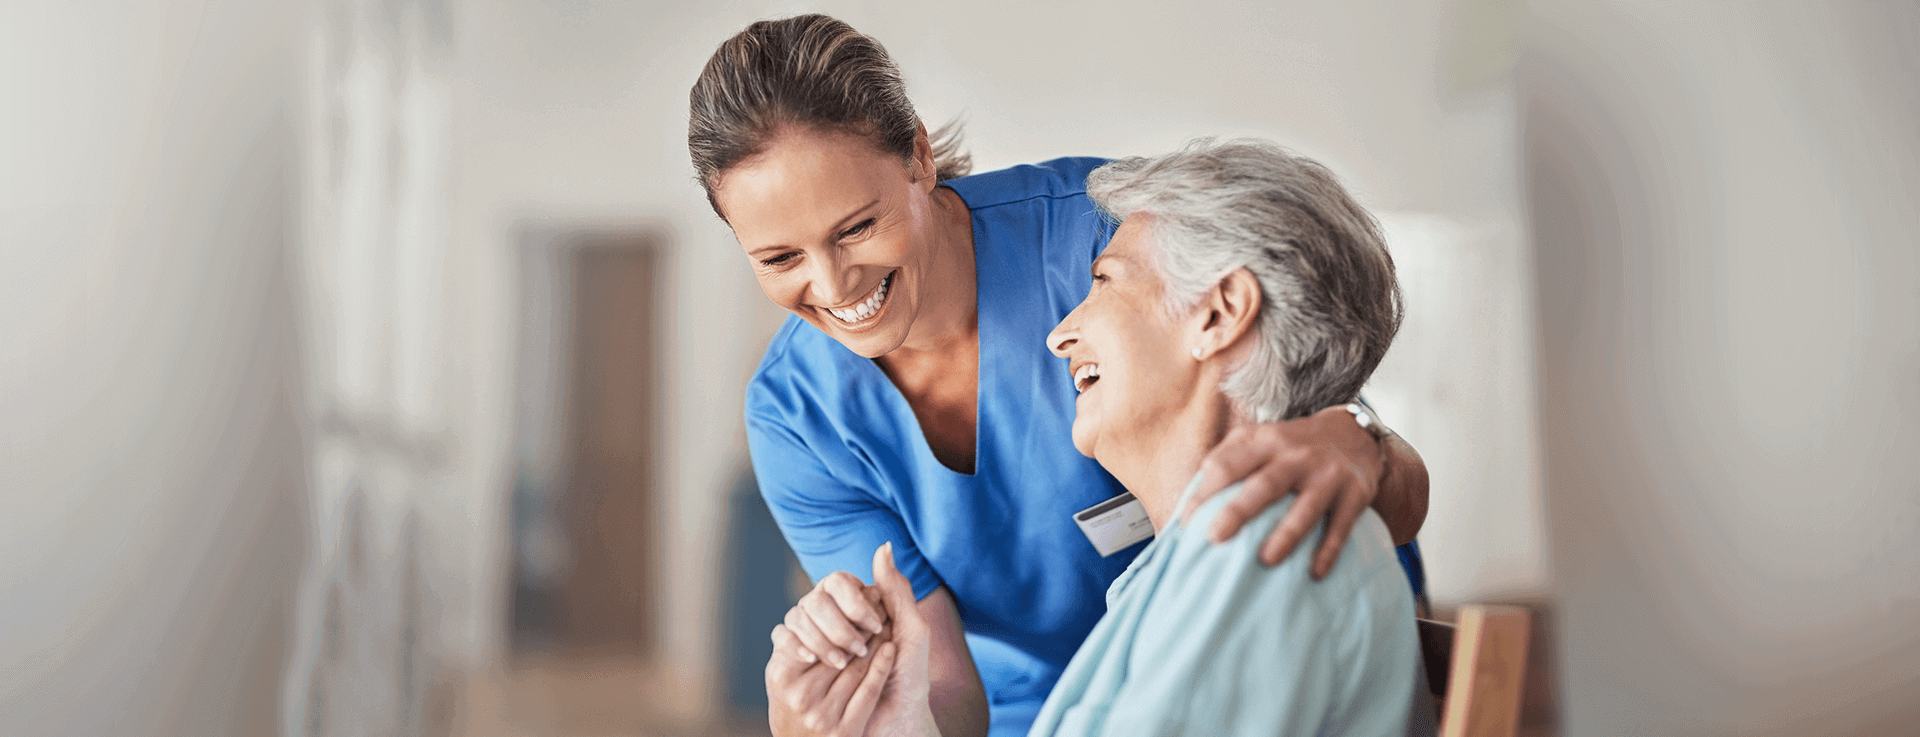 Home Care Service Homebound Individual Care Service Beaverton Or Serenity Home Care